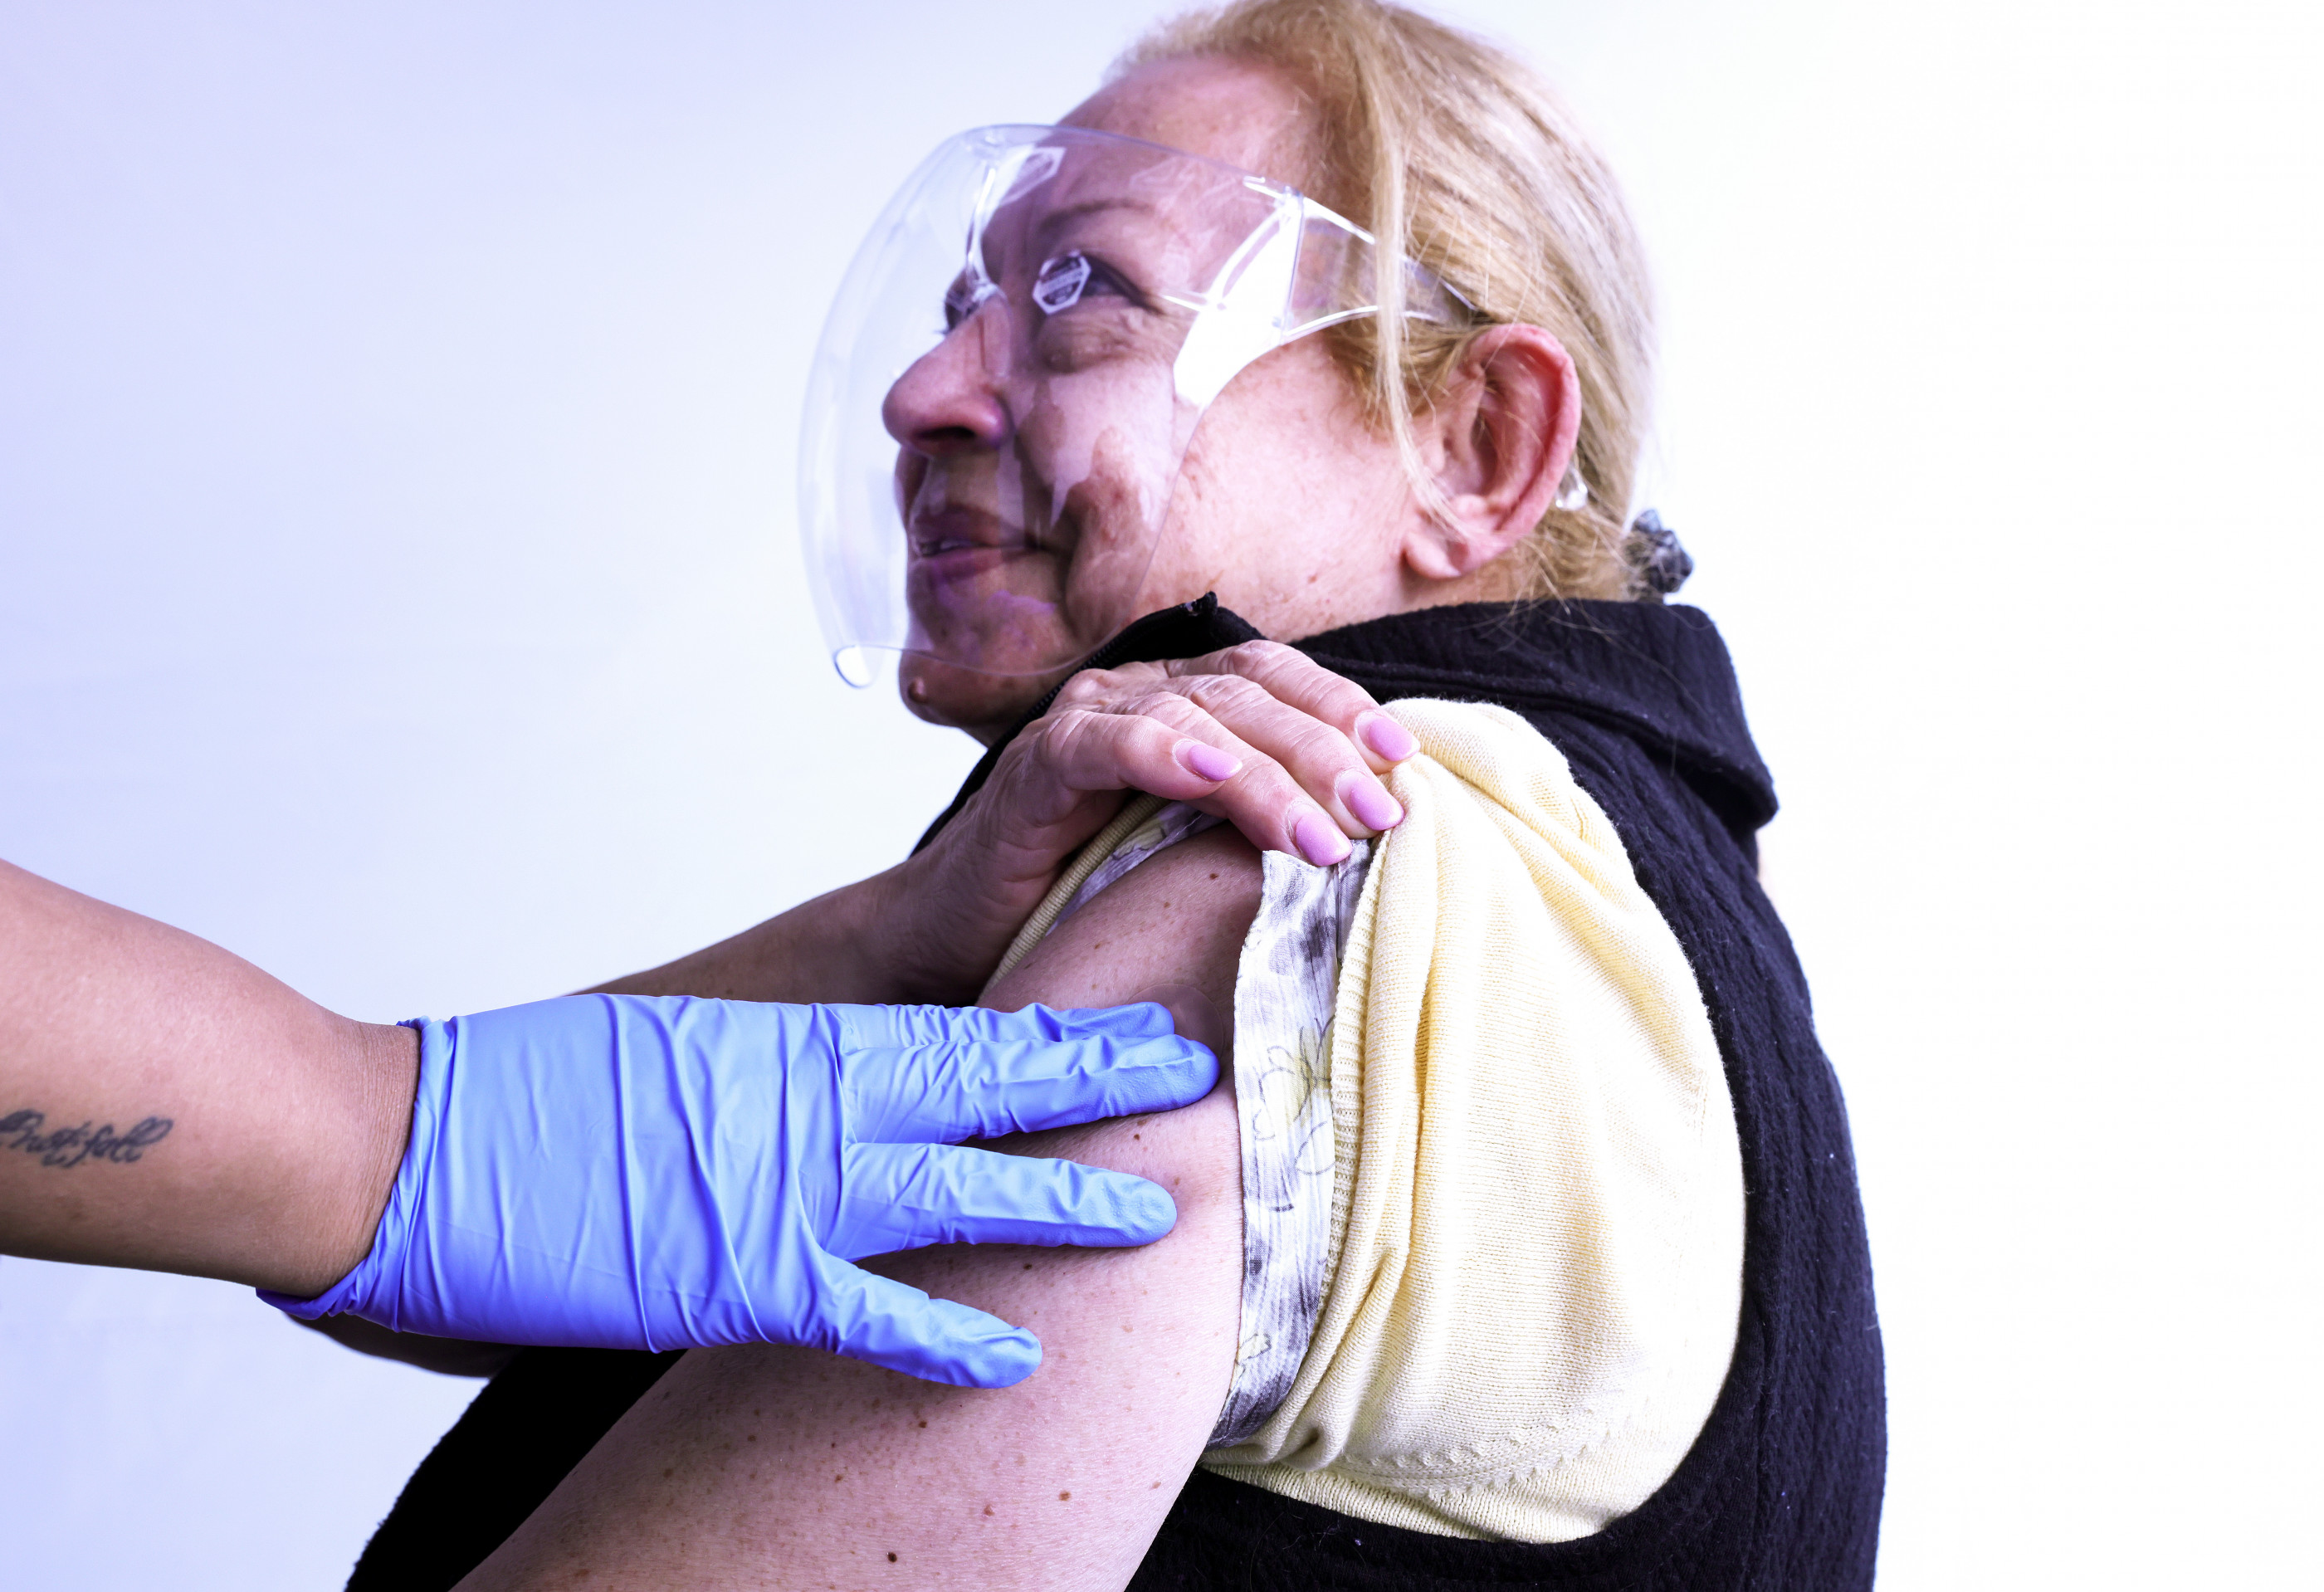 LOS ANGELES, CALIFORNIA - MARCH 25: Salwa Aziz receives an adhesive bandage after receiving a one shot dose of the Johnson & Johnson COVID-19 vaccine at a clinic targeting immigrant community members on March 25, 2021 in Los Angeles, California.  The clinic, run by the St. John's Well Child and Family Center, estimates it has vaccinated more than 100,000 people in the Los Angeles area amid reports of two undocumented women who were refused coronavirus vaccinations in Orange County Rite Aid stores. Rite Aid has called the refusals mistakes in a written statement. (Photo by Mario Tama/Getty Images)